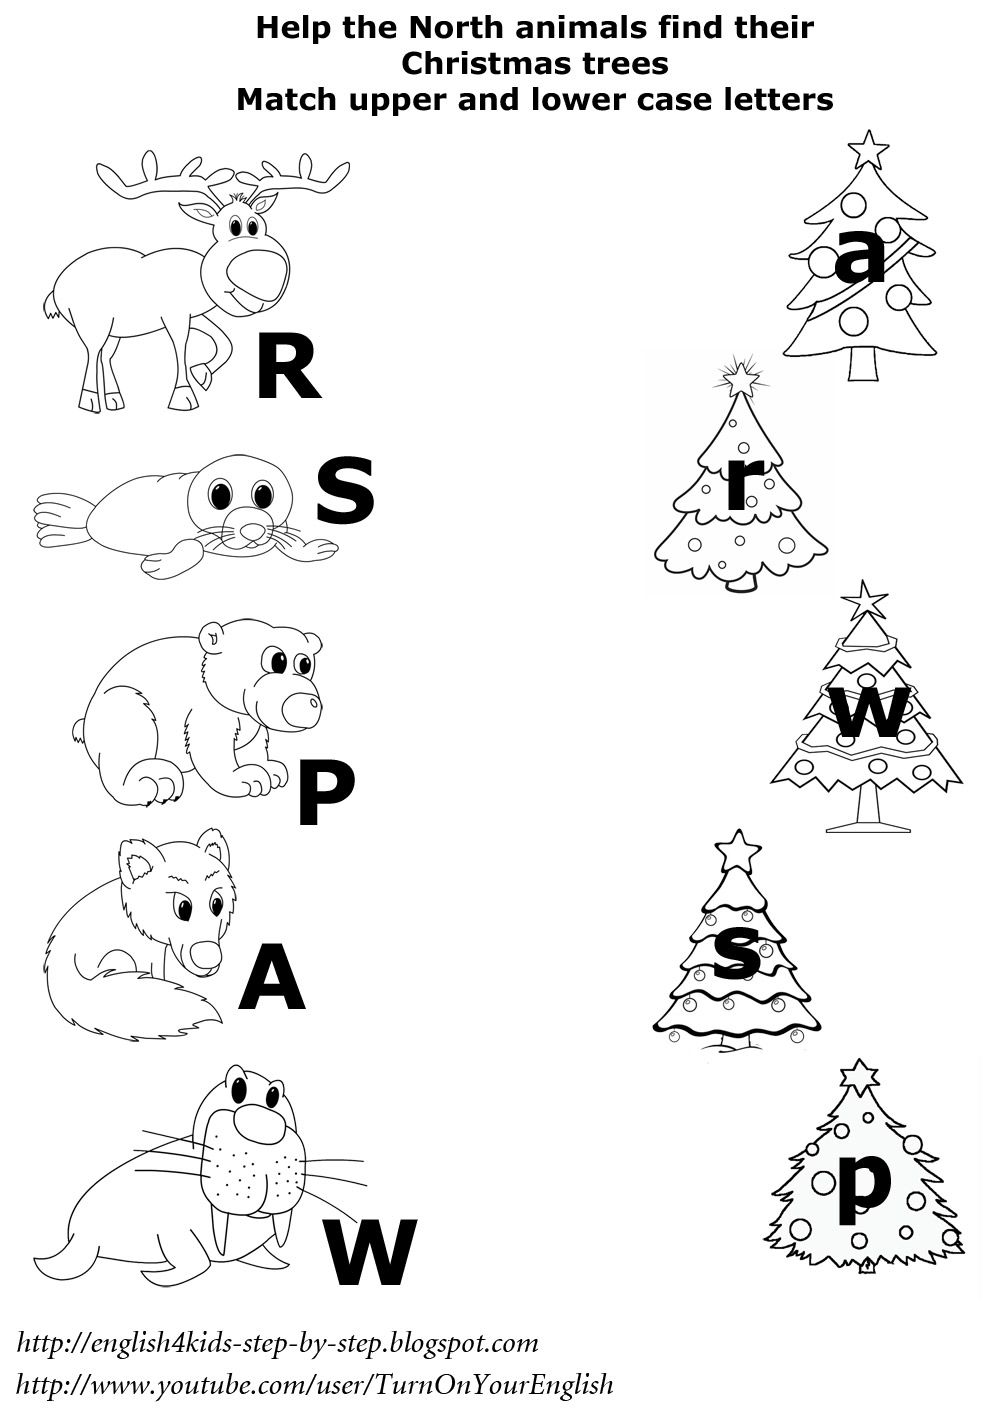 north animals christmas worksheet#matching upper and lower case ...